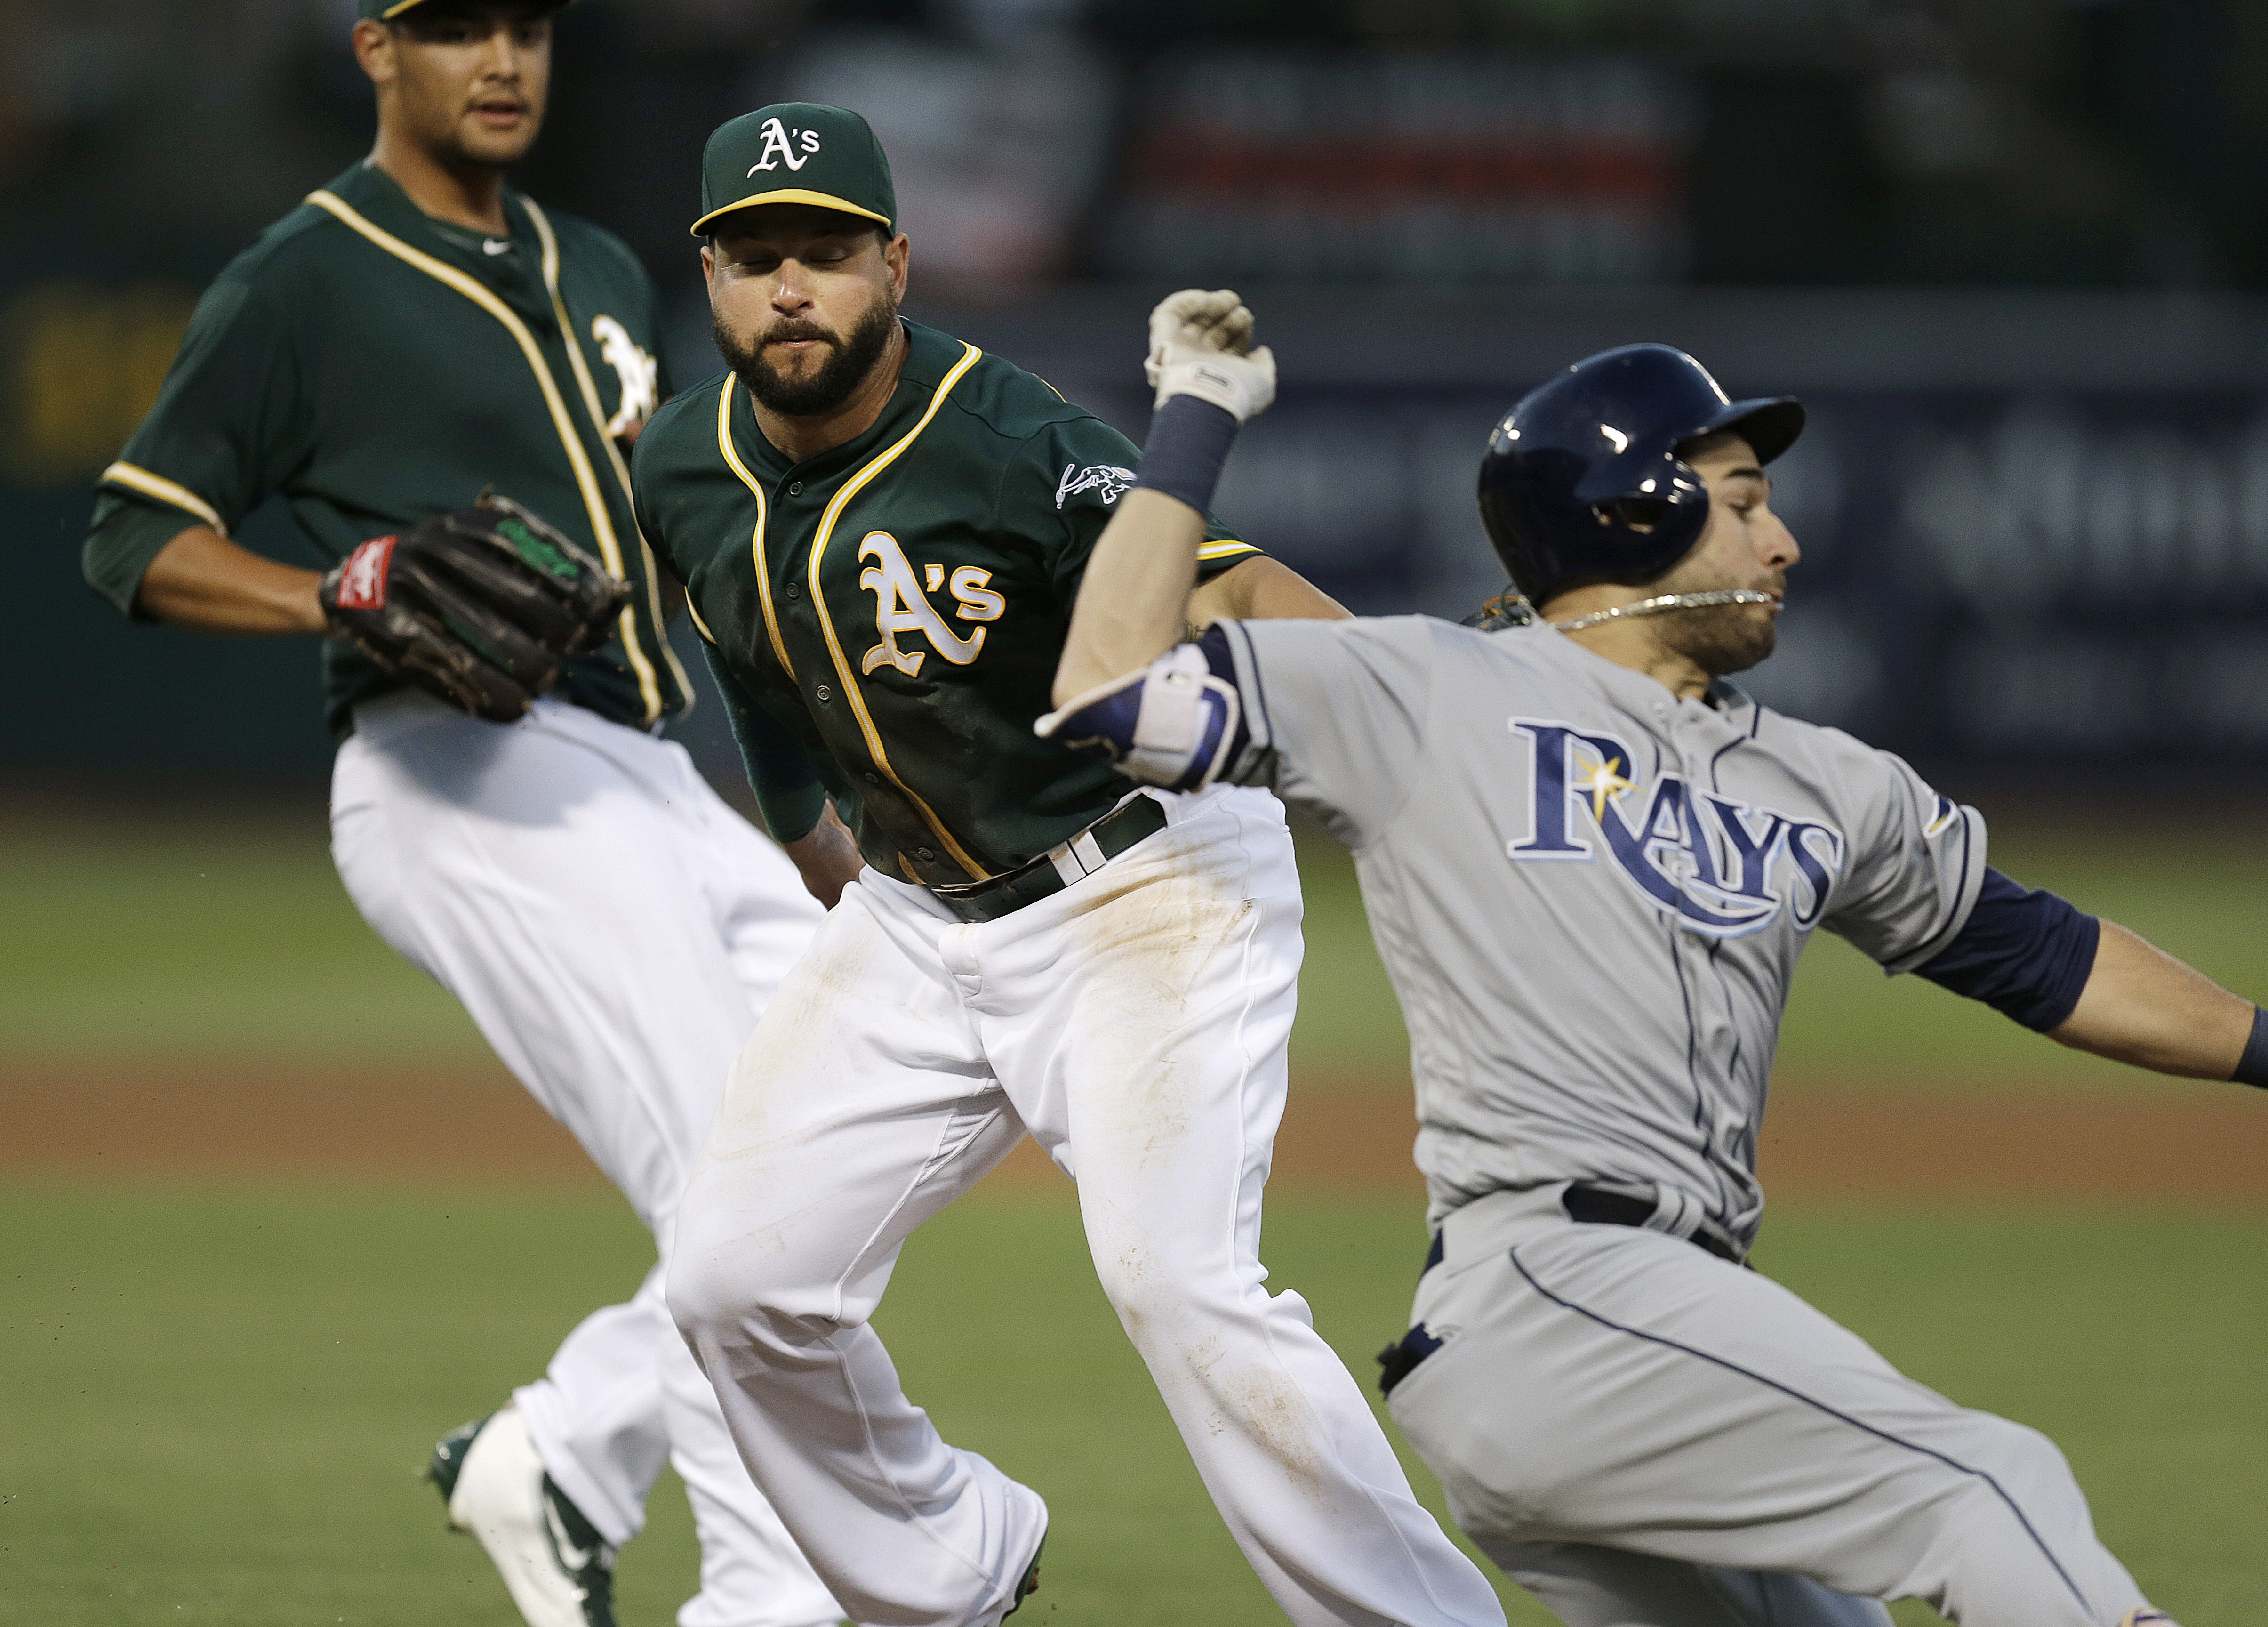 Tampa Bay Rays' Kevin Kiermaier, right, is tagged out by Oakland Athletics' Yonder Alonso, center, at first base during the fifth inning of a baseball game Friday, July 22, 2016, in Oakland, Calif. At left is A's pitcher Sean Manaea. (AP Photo/Ben Margot)